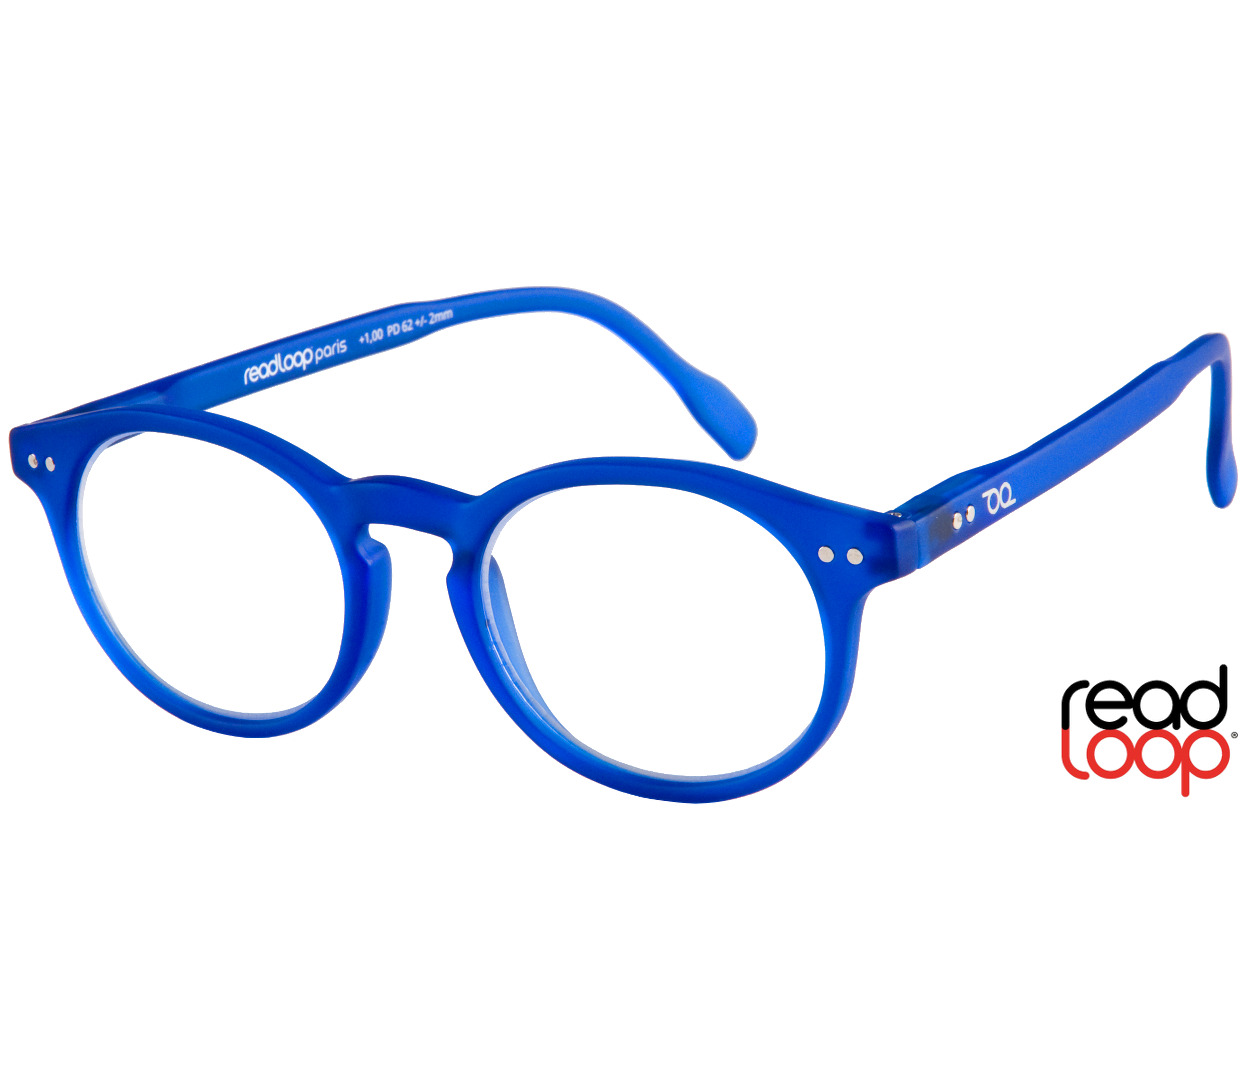 Main Image (Angle) - Nevada (Blue) Retro Reading Glasses